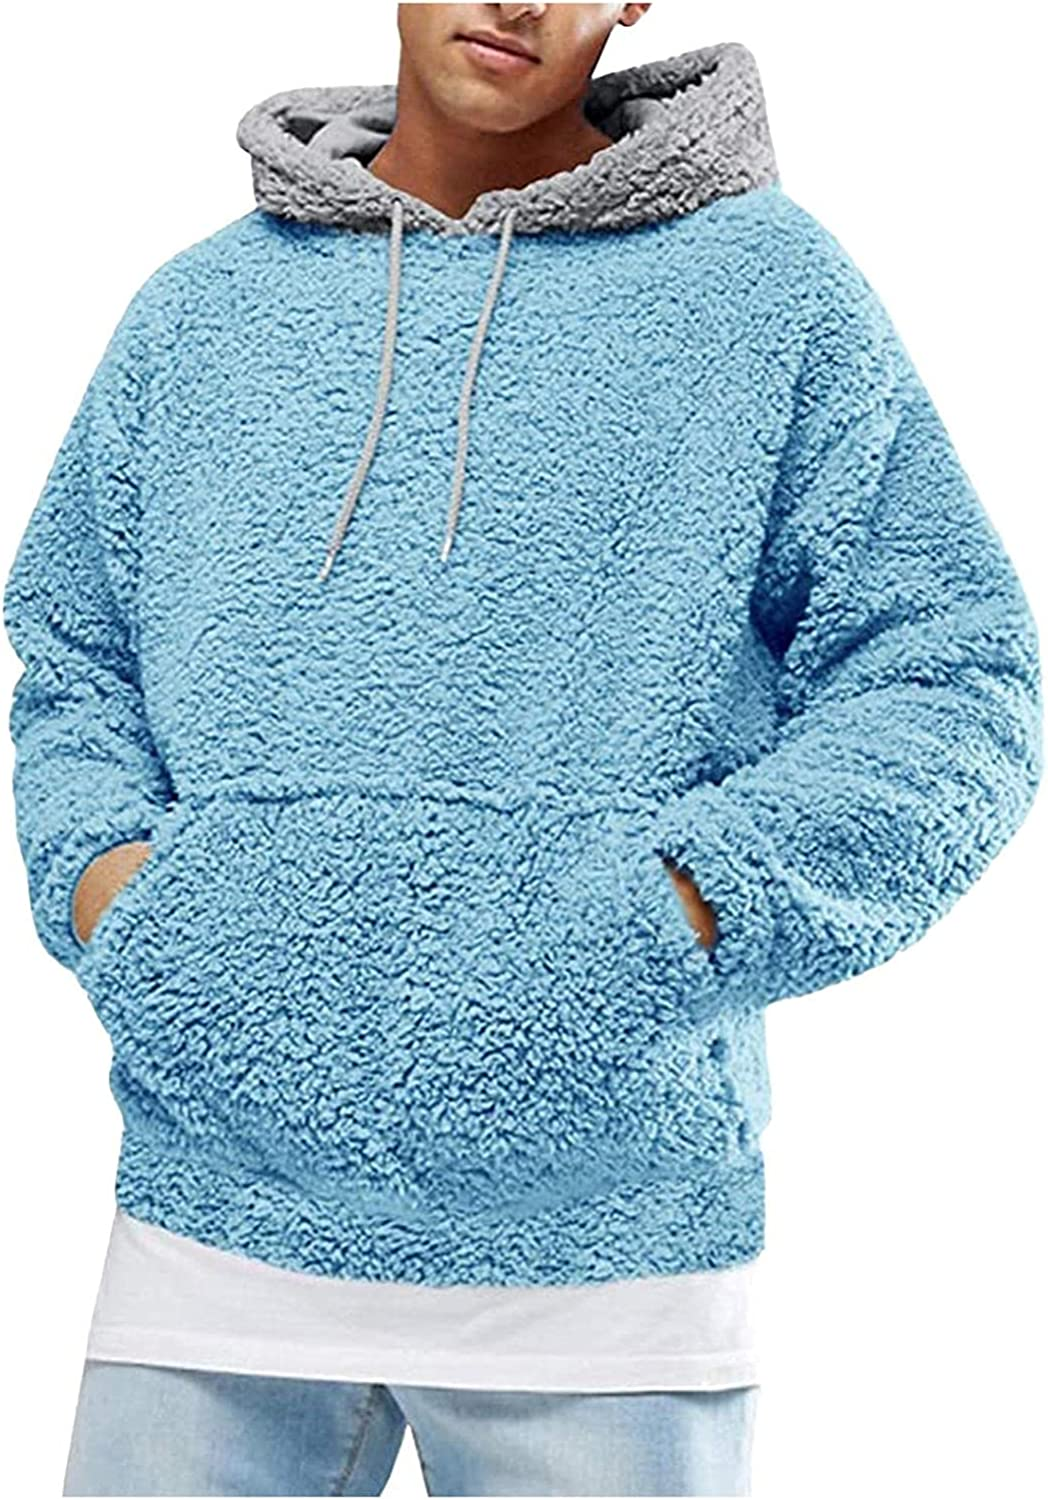 Aayomet Hoodies for Men Fuzzy Front Pocket Fashion Autumn Hoodies Pullover Long Sleeve Casual Mens Hoodies